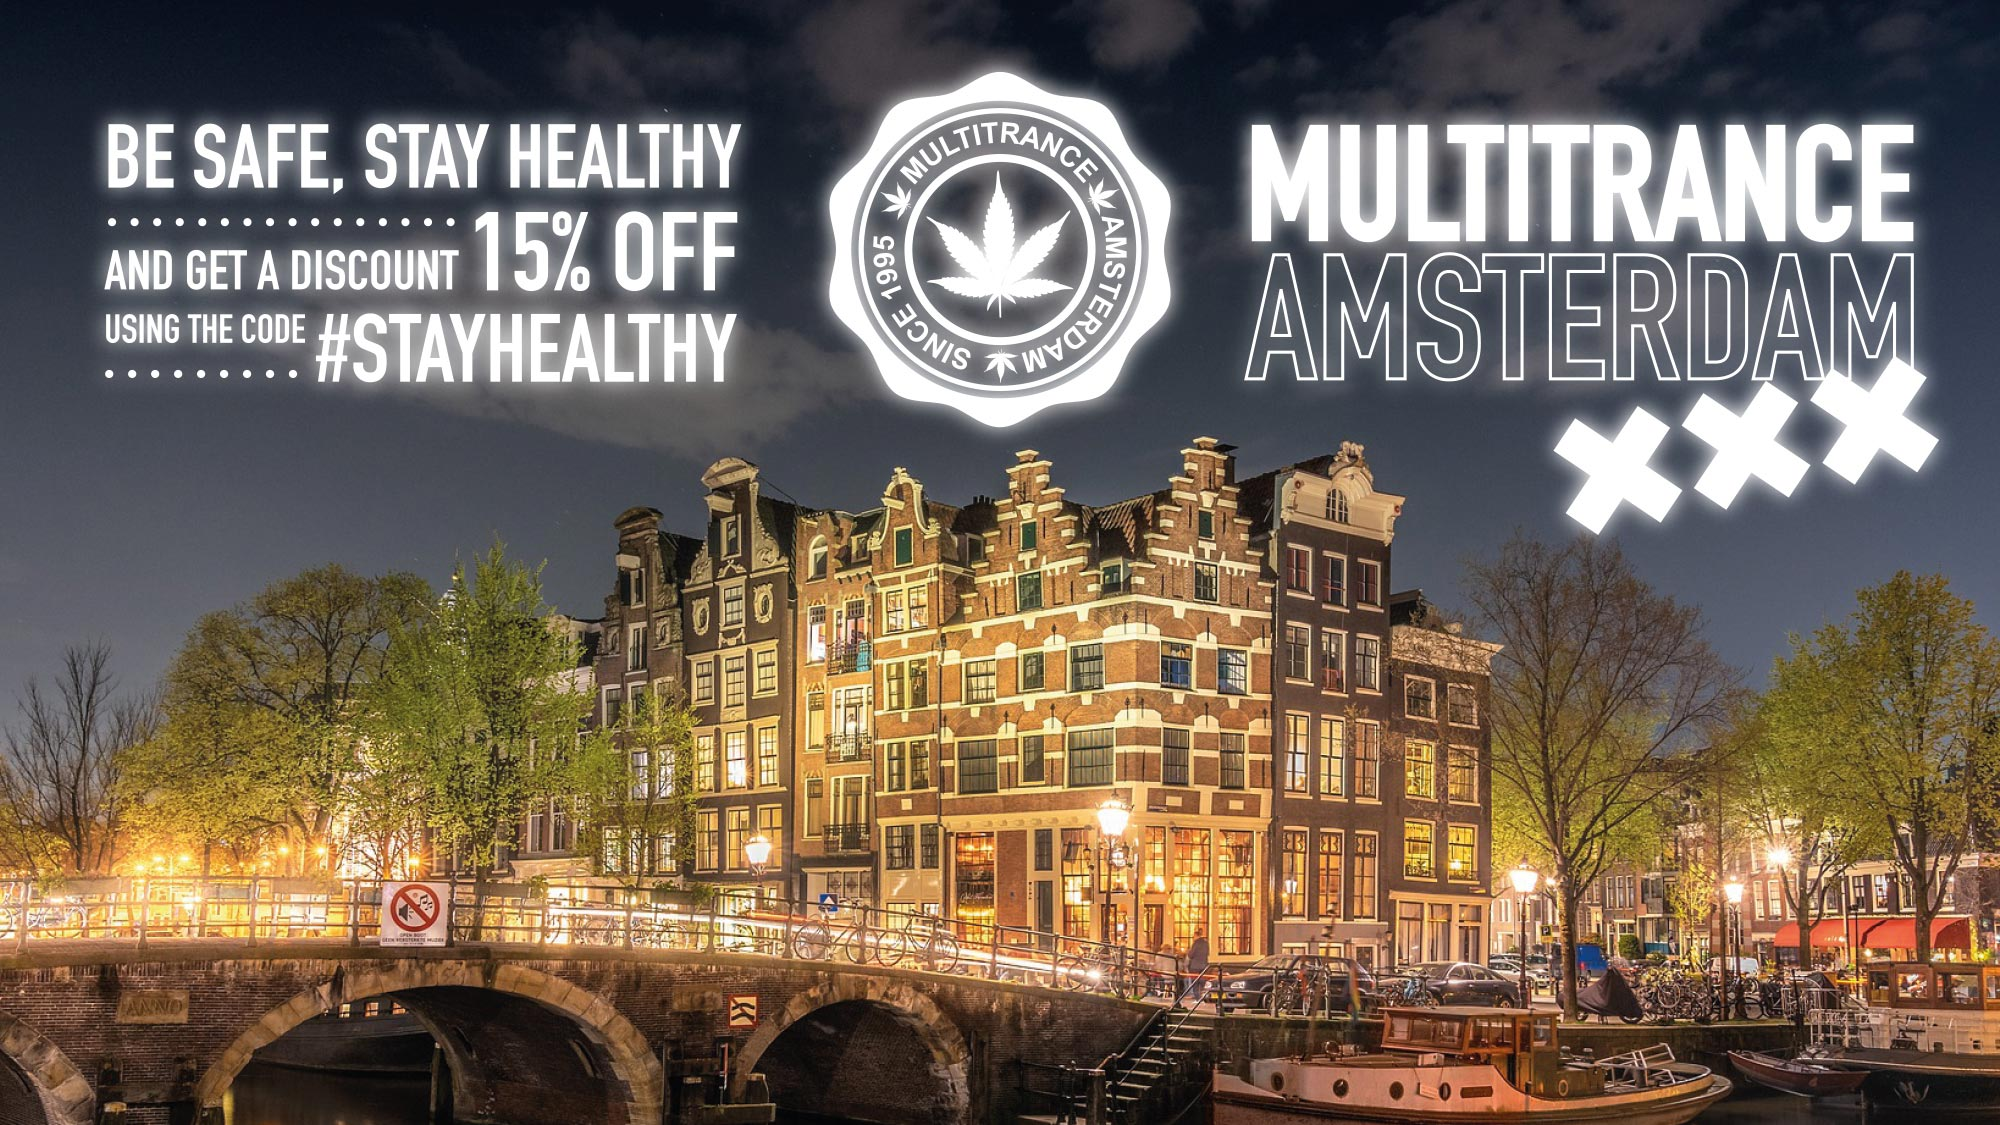 Multitrance logo displayed in-between #StayHealthy promotion and Multitrance Amsterdam title with an image of an iconic Amsterdam city building and bridge in the background